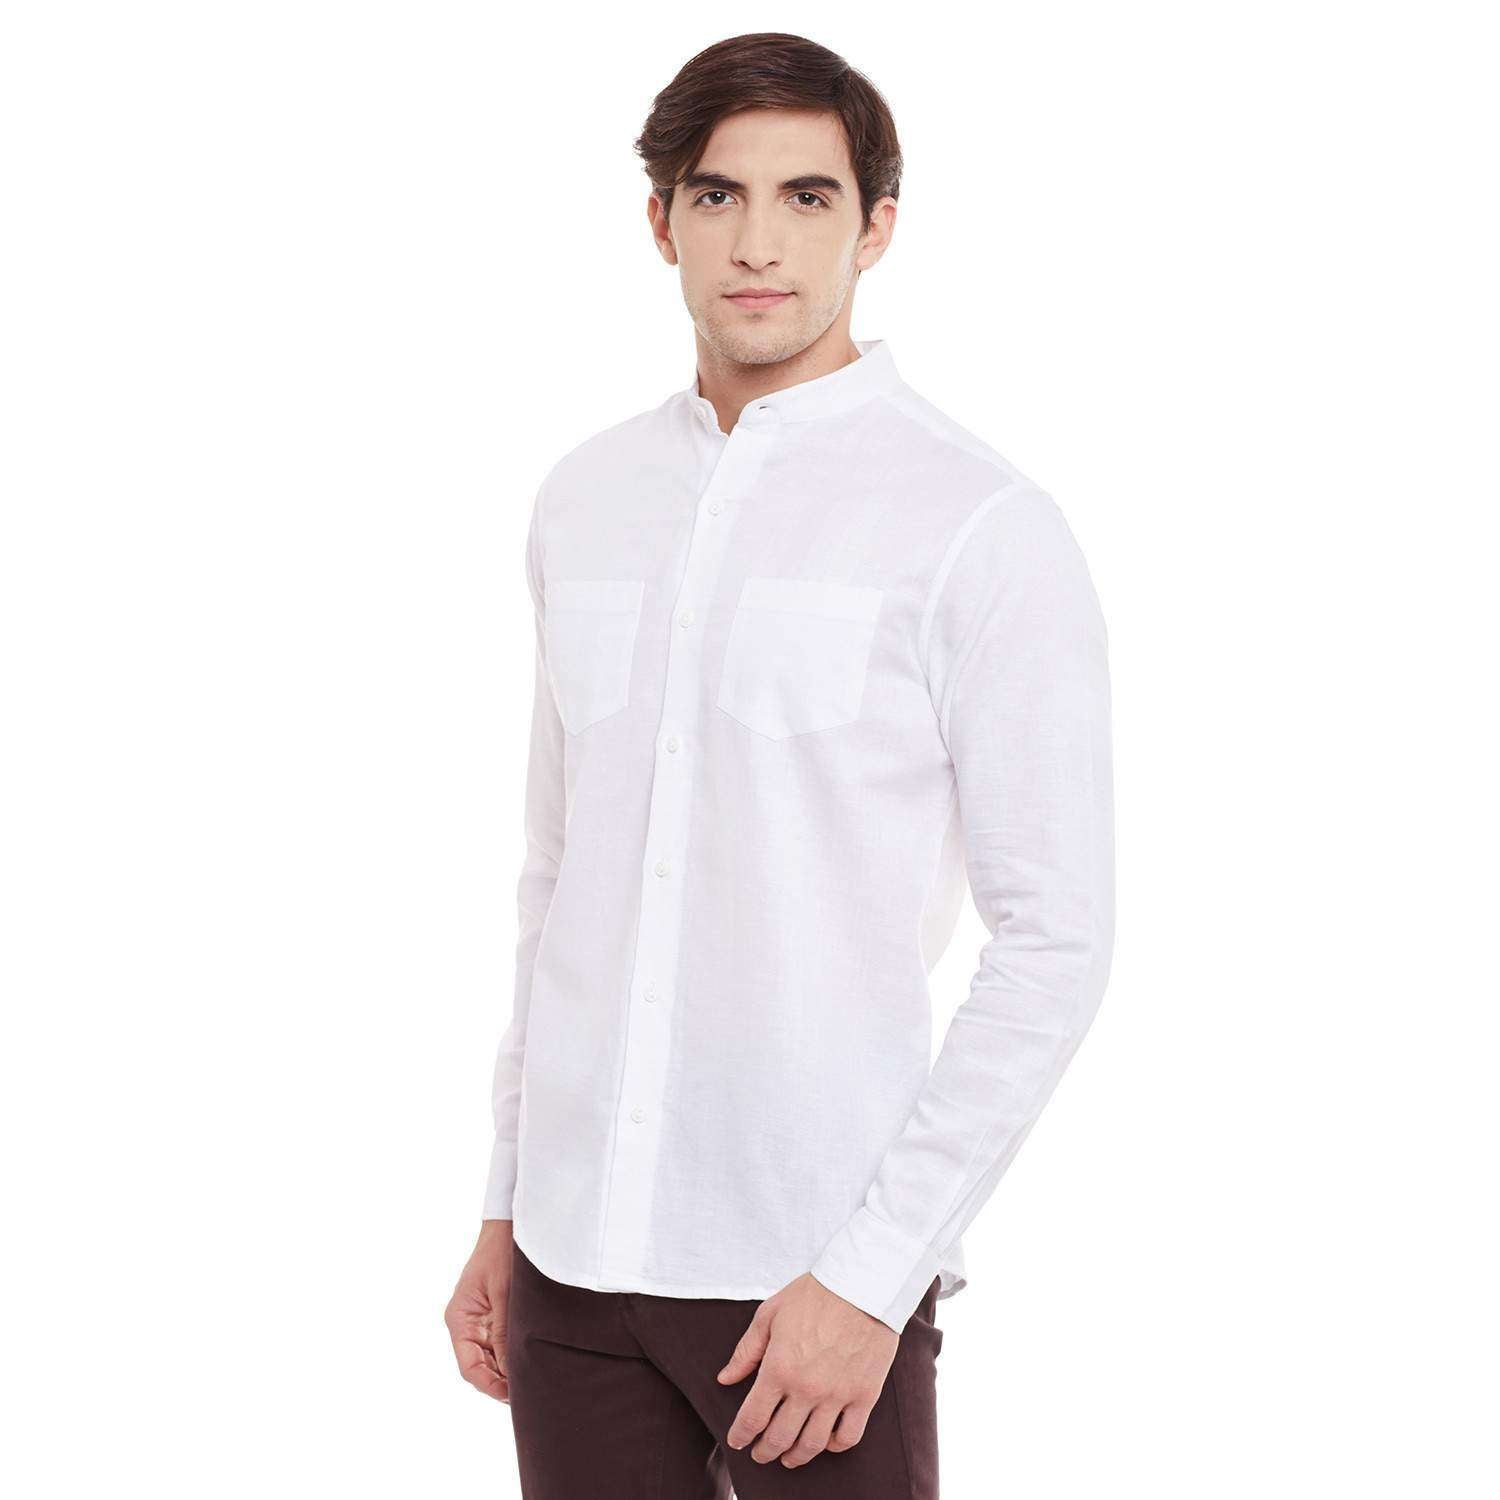 Full Sleeve Shirt with band collar